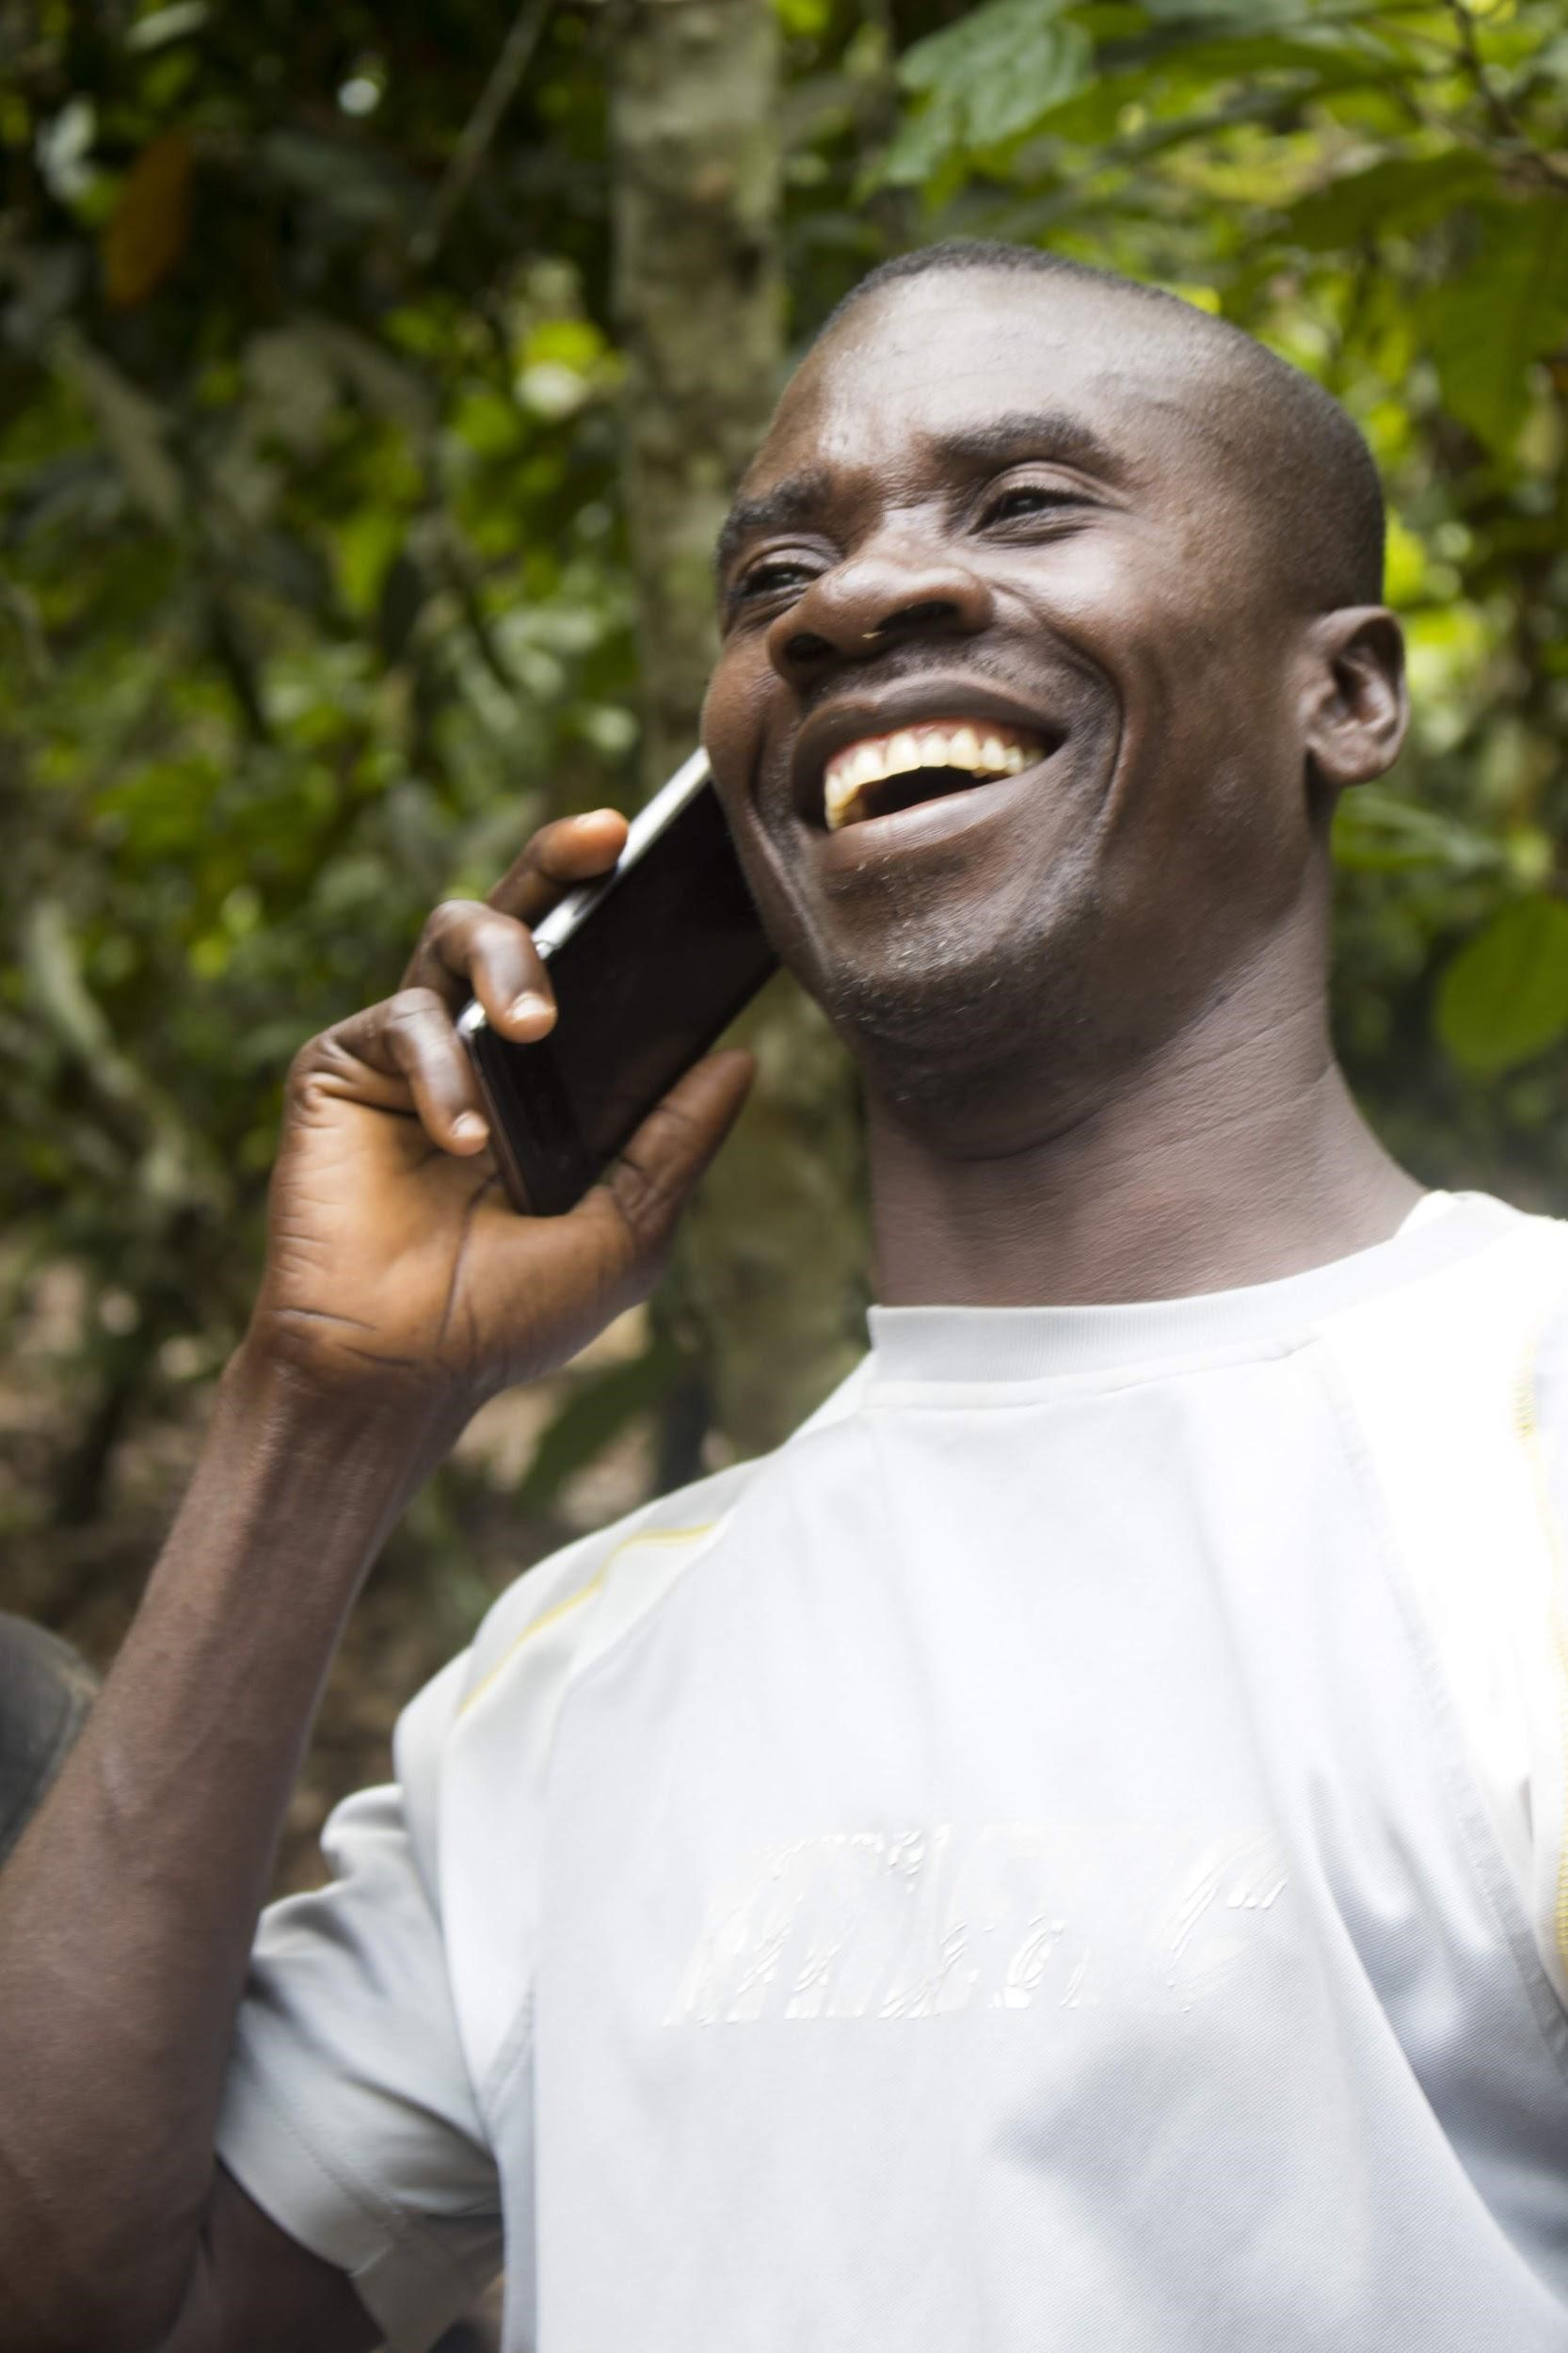 Farmers in Ghana use Mobile services to improve food security in the TWIGA program